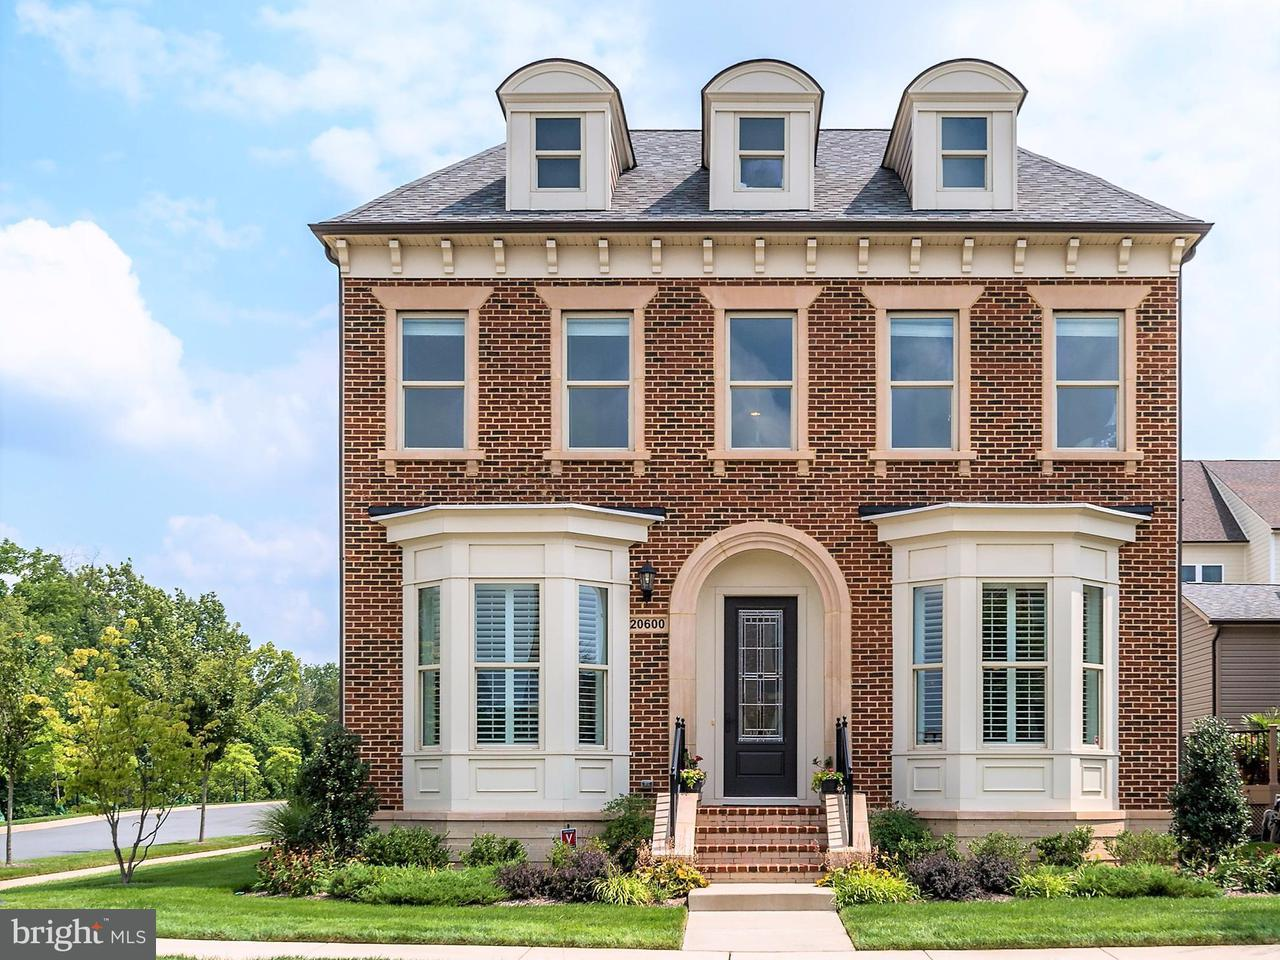 Single Family Home for Sale at 20600 EXCHANGE Street 20600 EXCHANGE Street Ashburn, Virginia 20147 United States